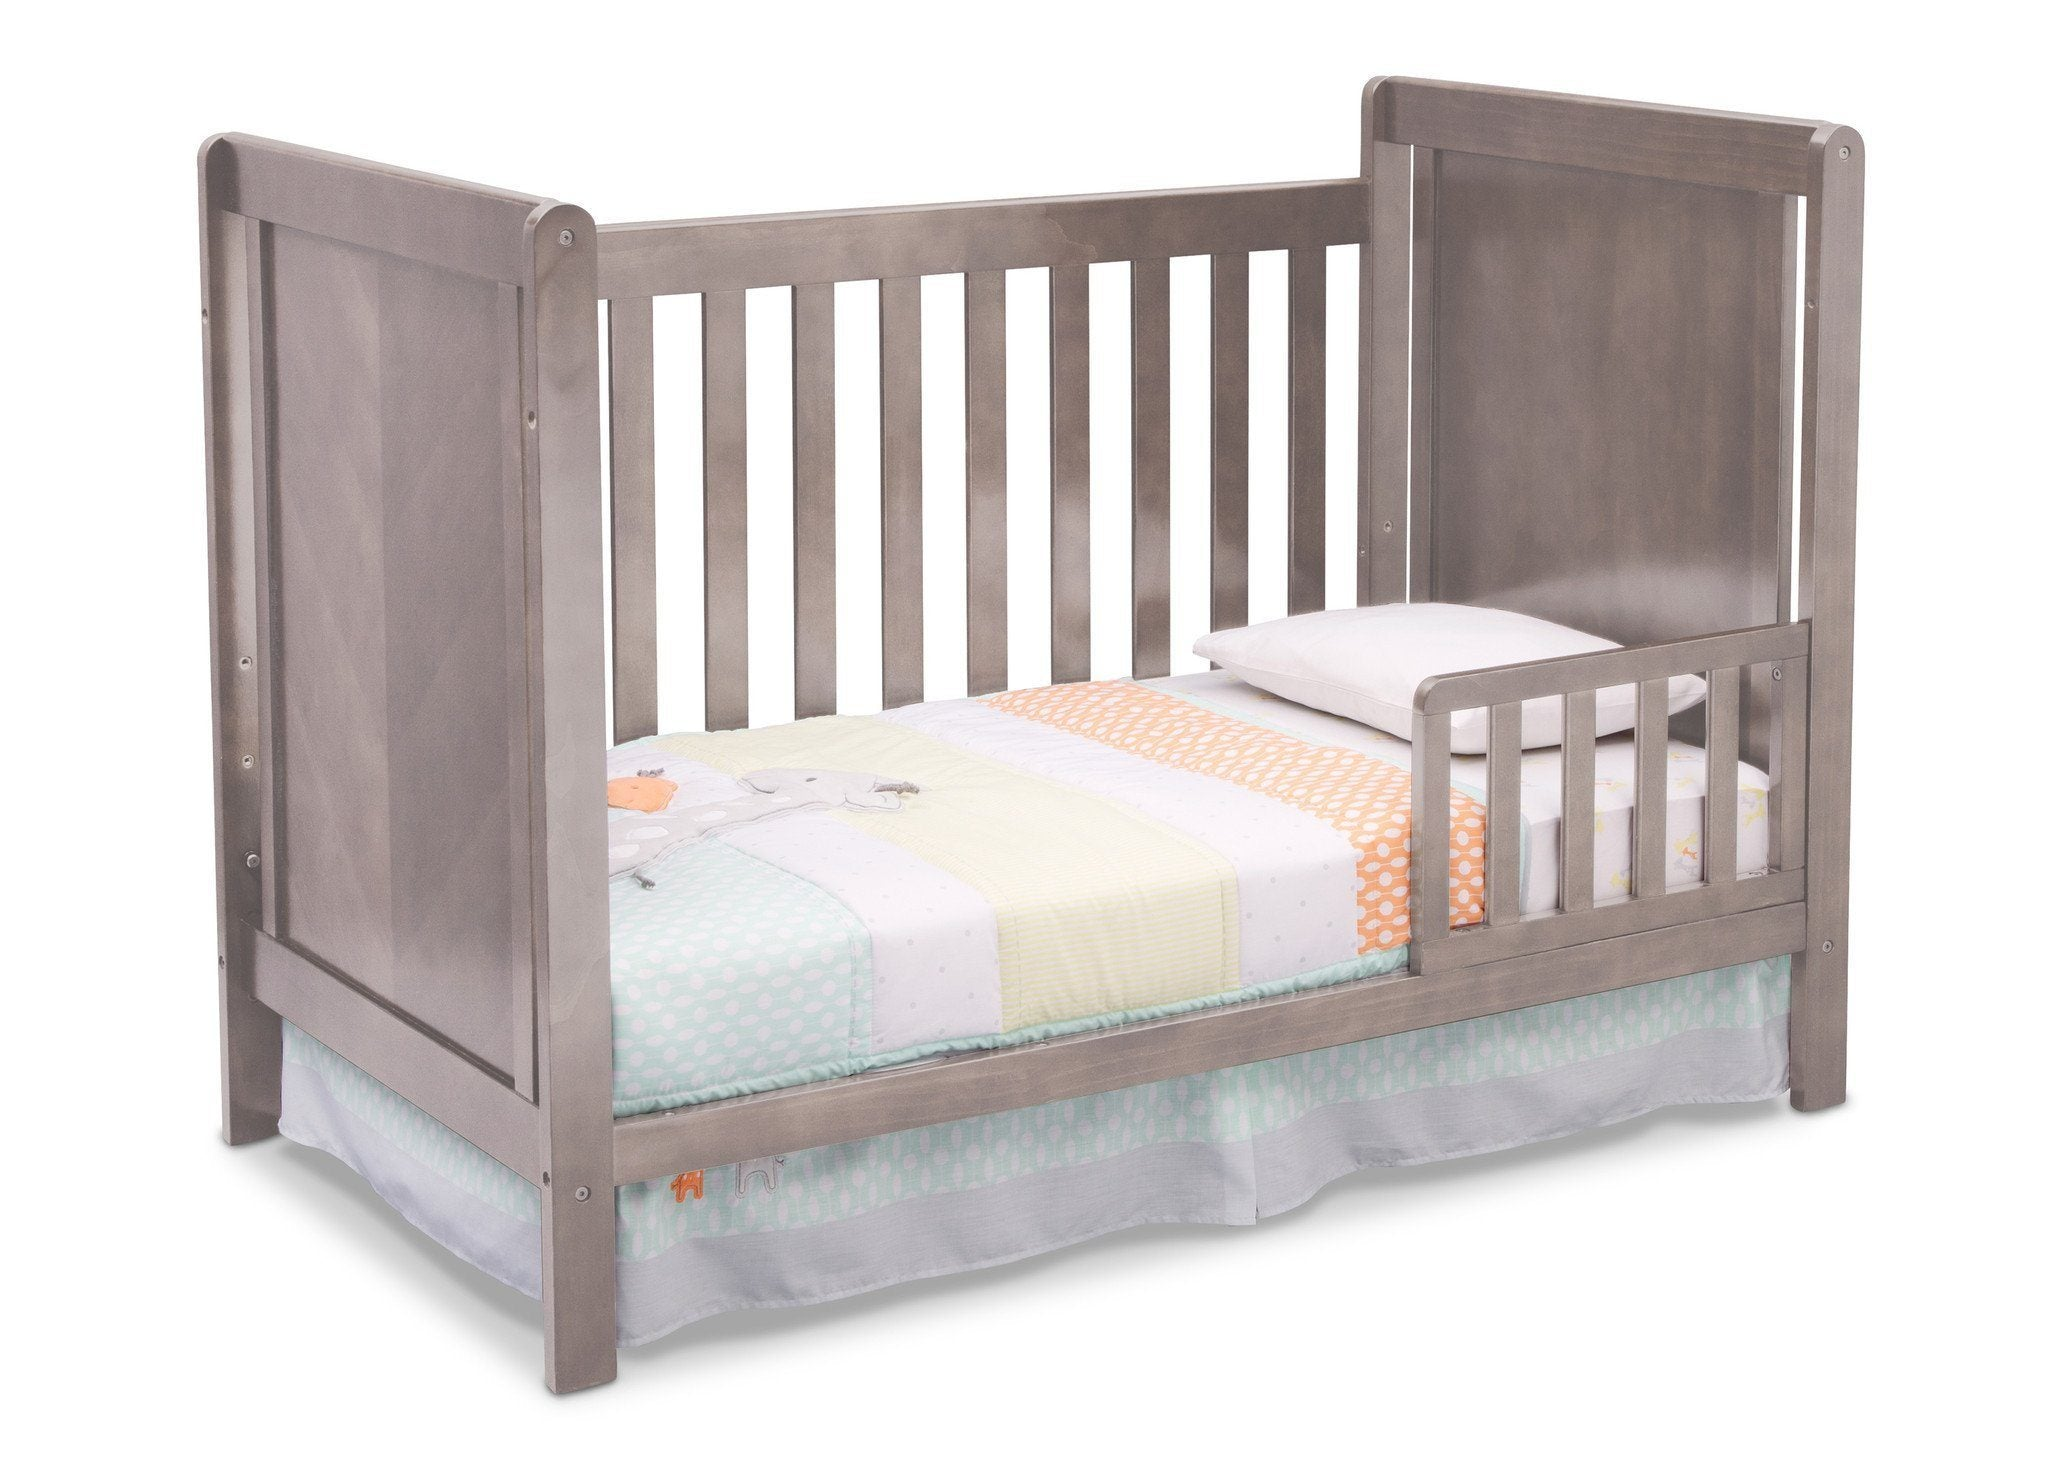 Delta Children Stained Grey (054) Cypress 4-in-1 Crib, Toddler Bed Conversion with Toddler Guard Rail a2a